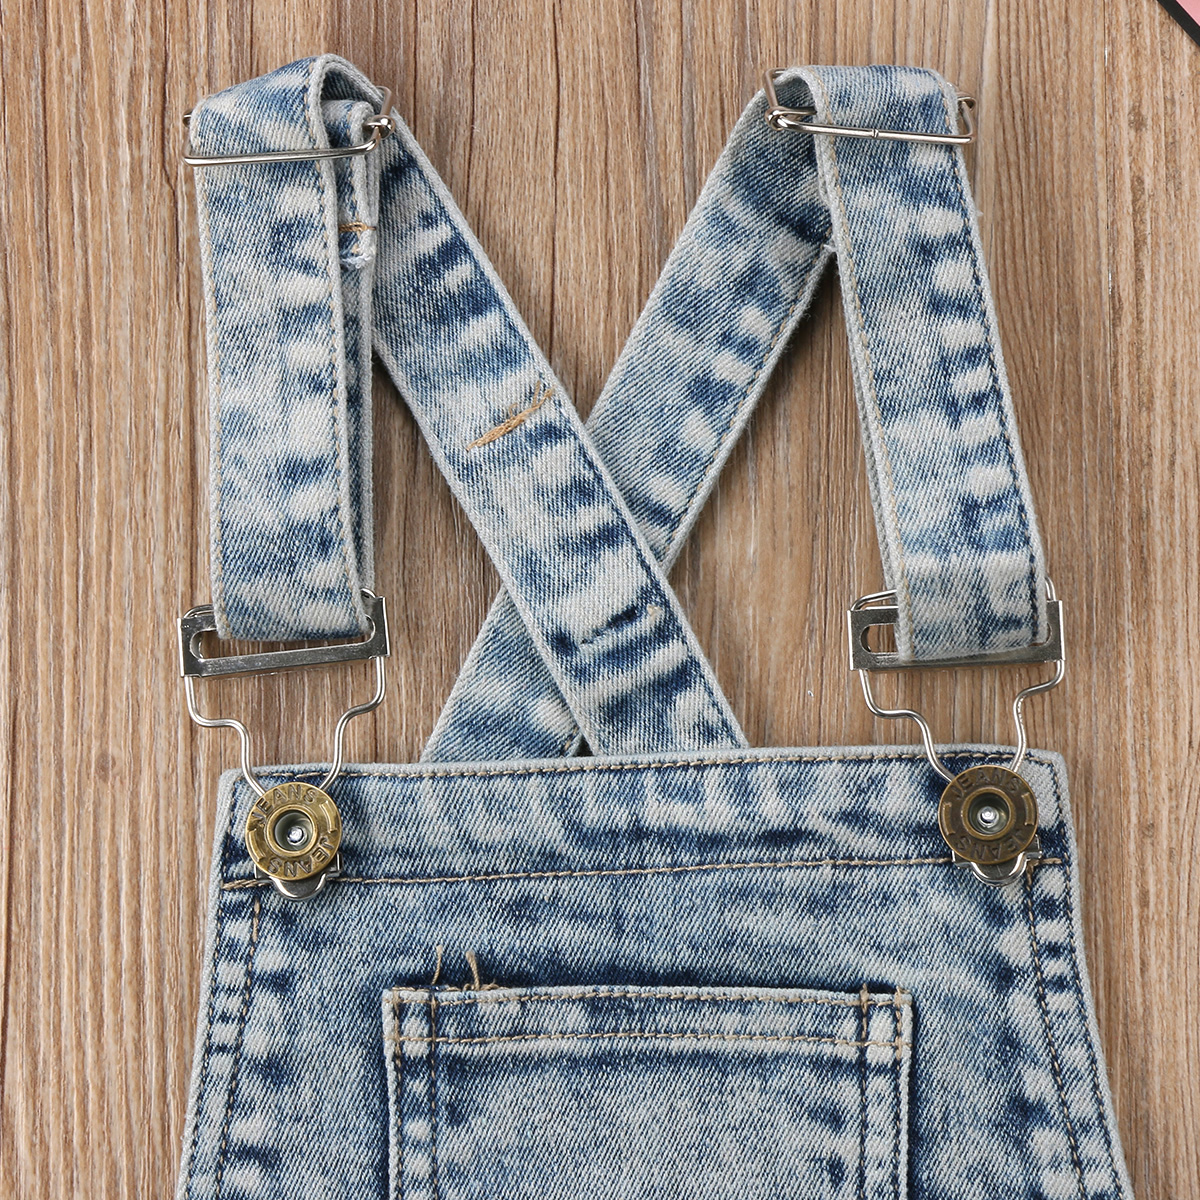 bdb6600c6d39 Baby Little Girls Boys Kids Denim Bib Short Overalls Denim Jumpsuit  Boyfriend Jeans Denim Romper Shortalls - Walmart.com